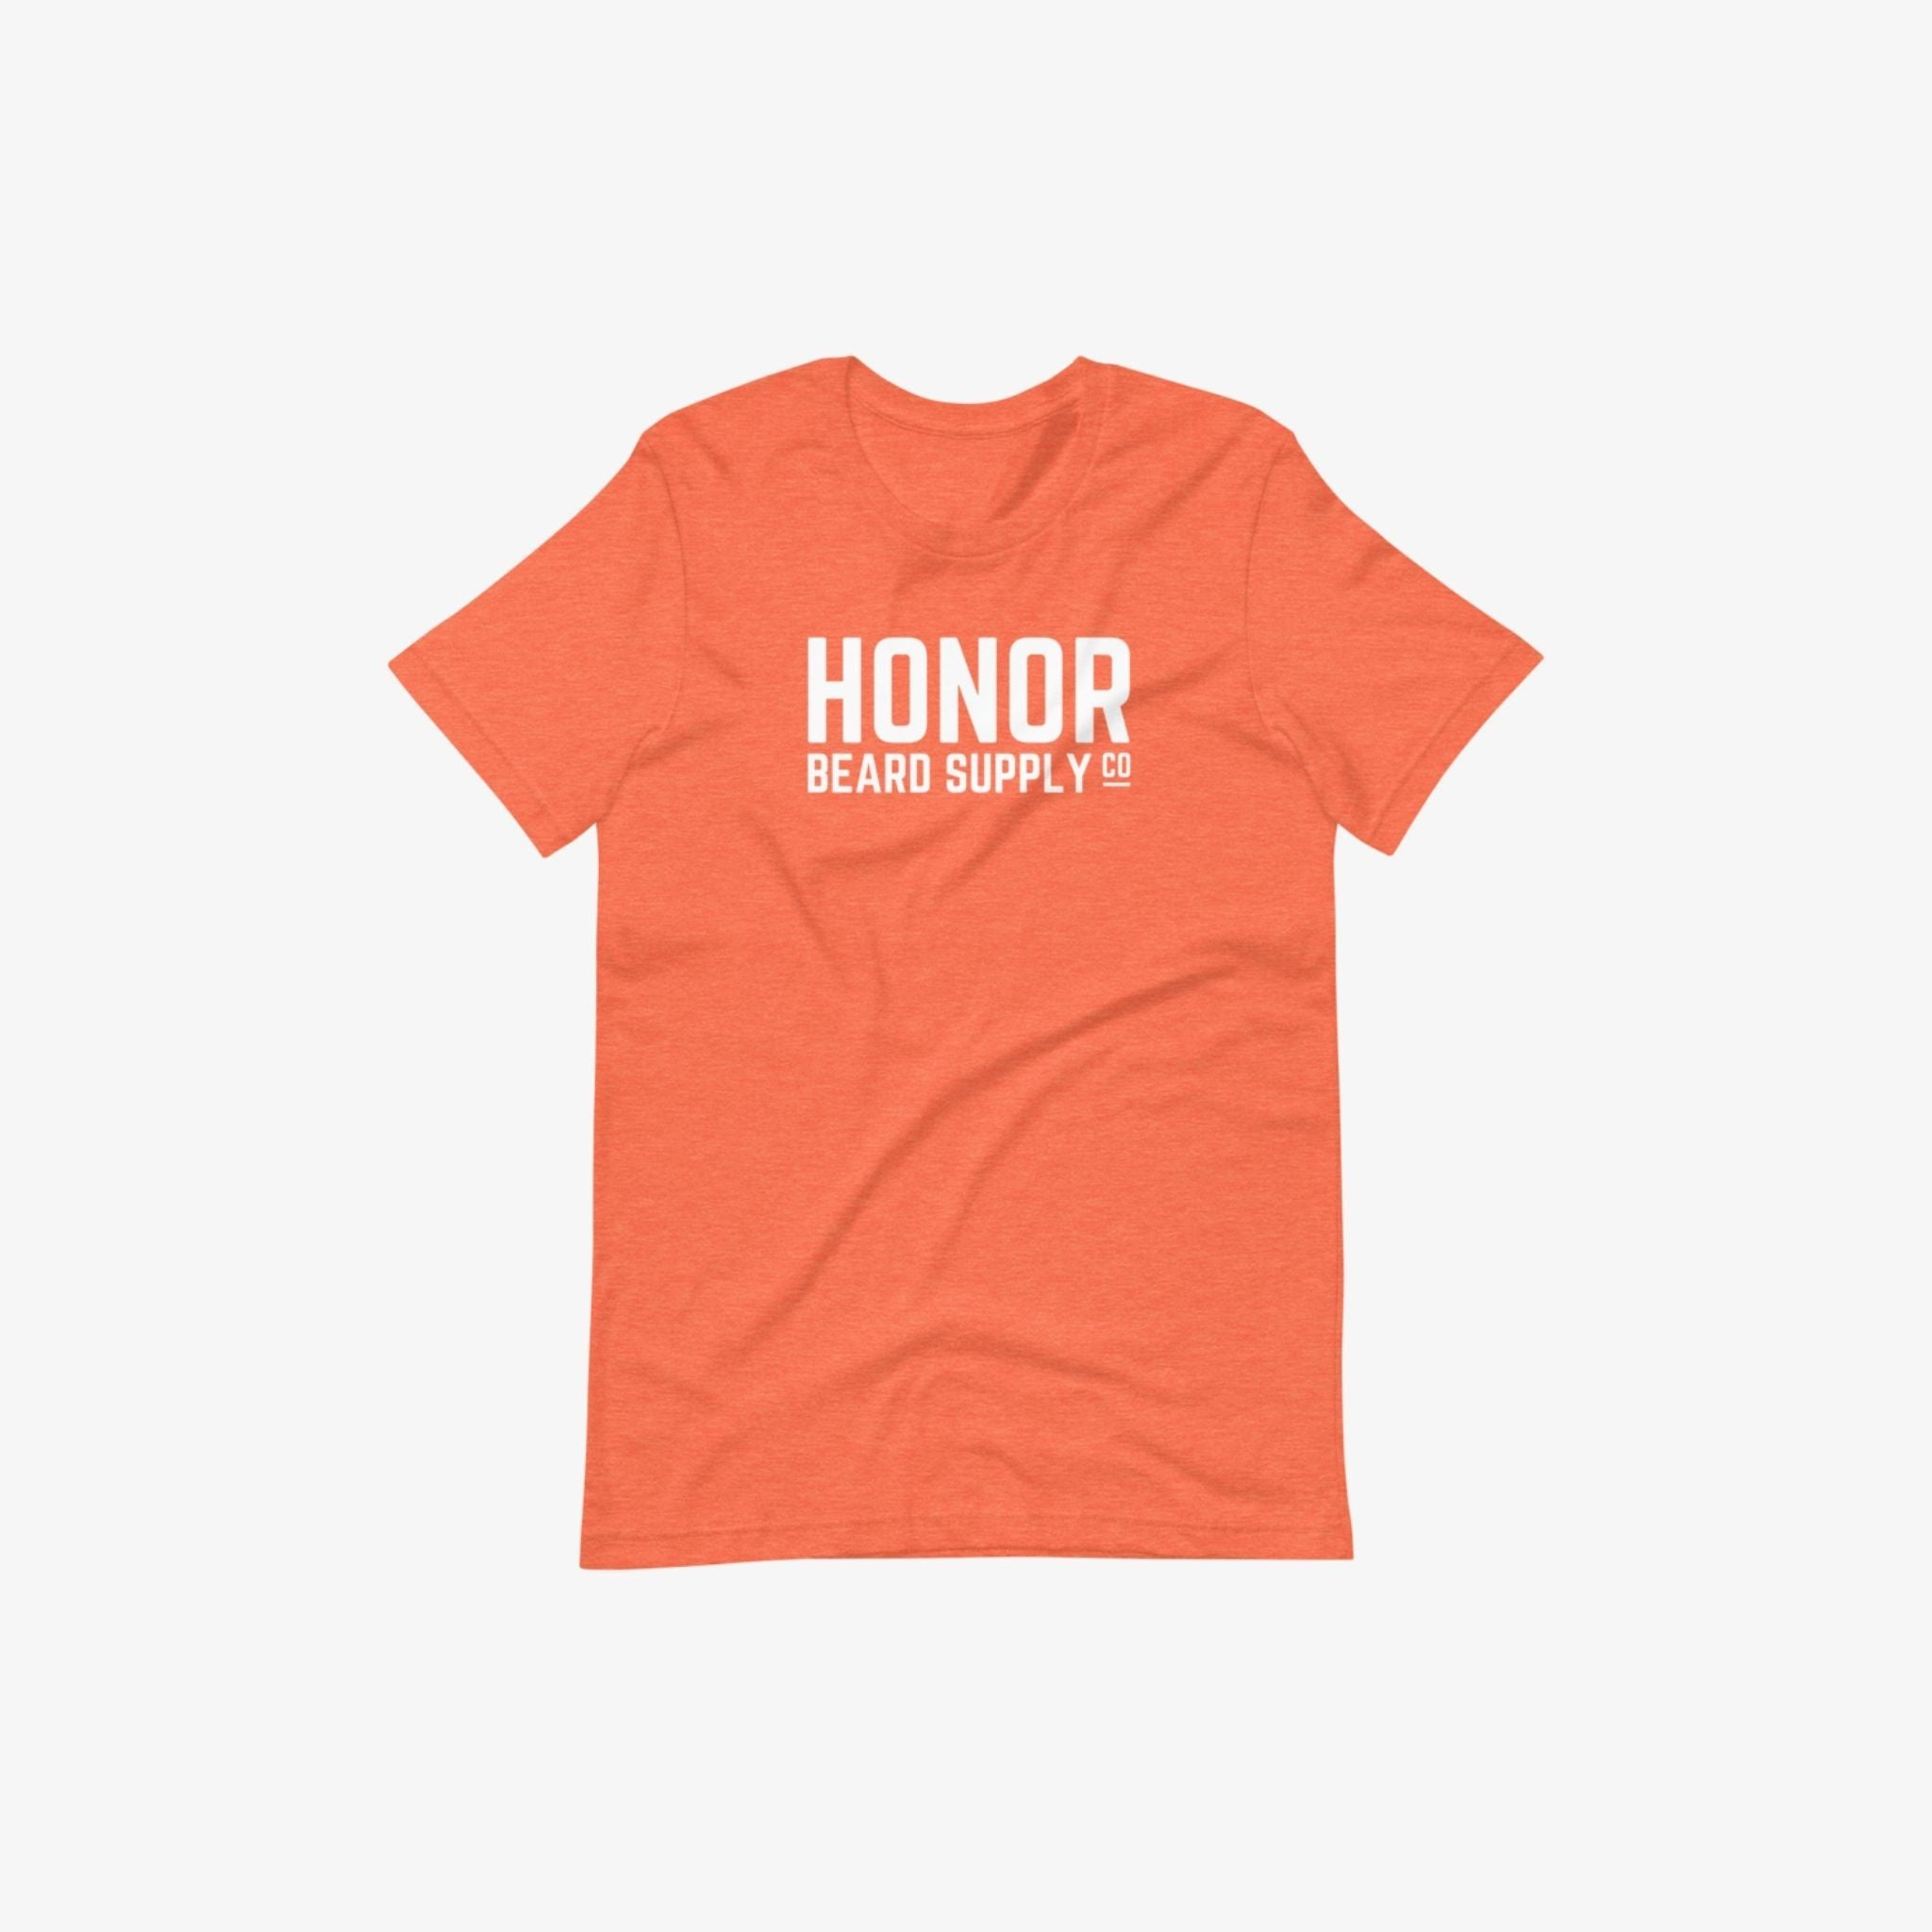 Honor's supply company tee in heather orange and on a white background